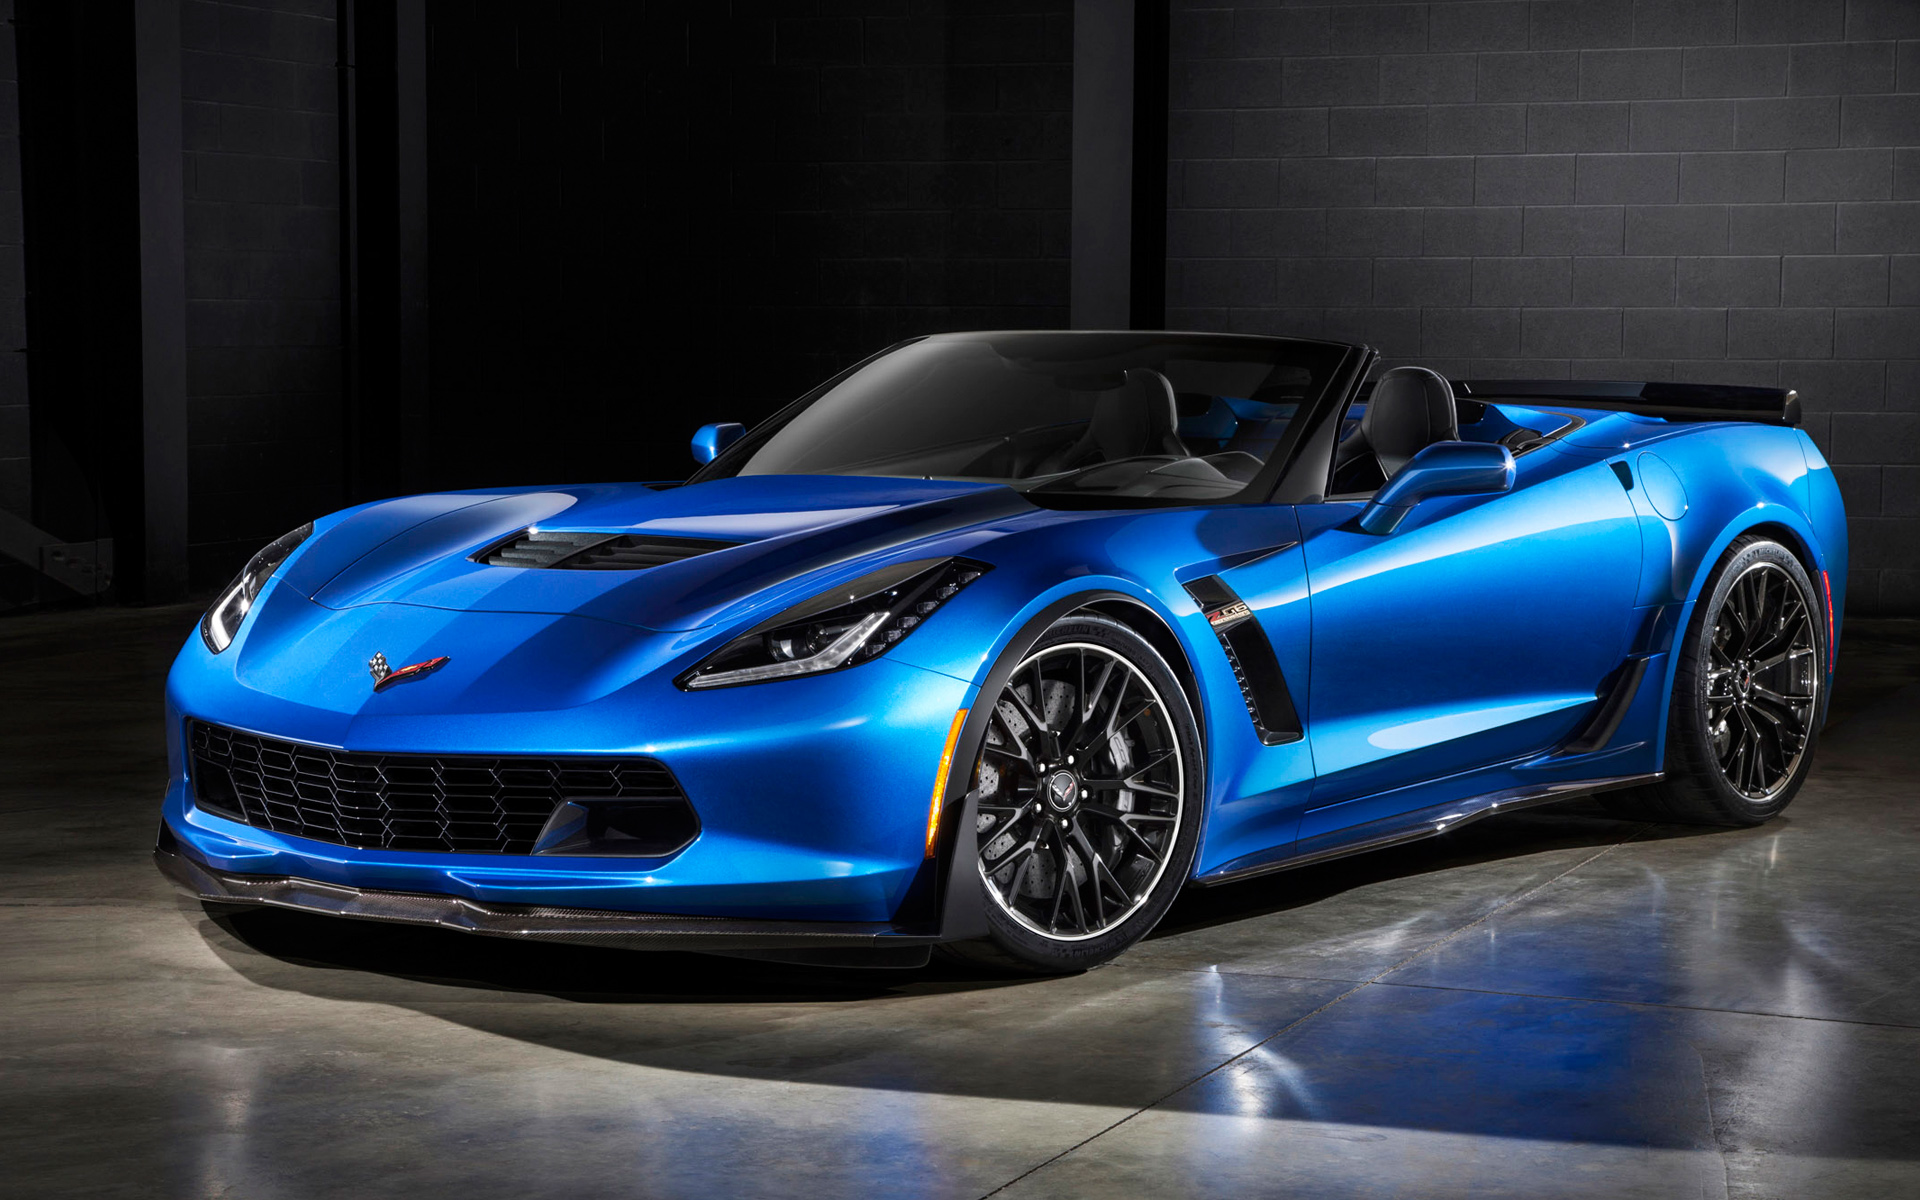 2015 Chevrolet Corvette Z06 Convertible Wallpaper Hd Car Wallpapers Id 4389